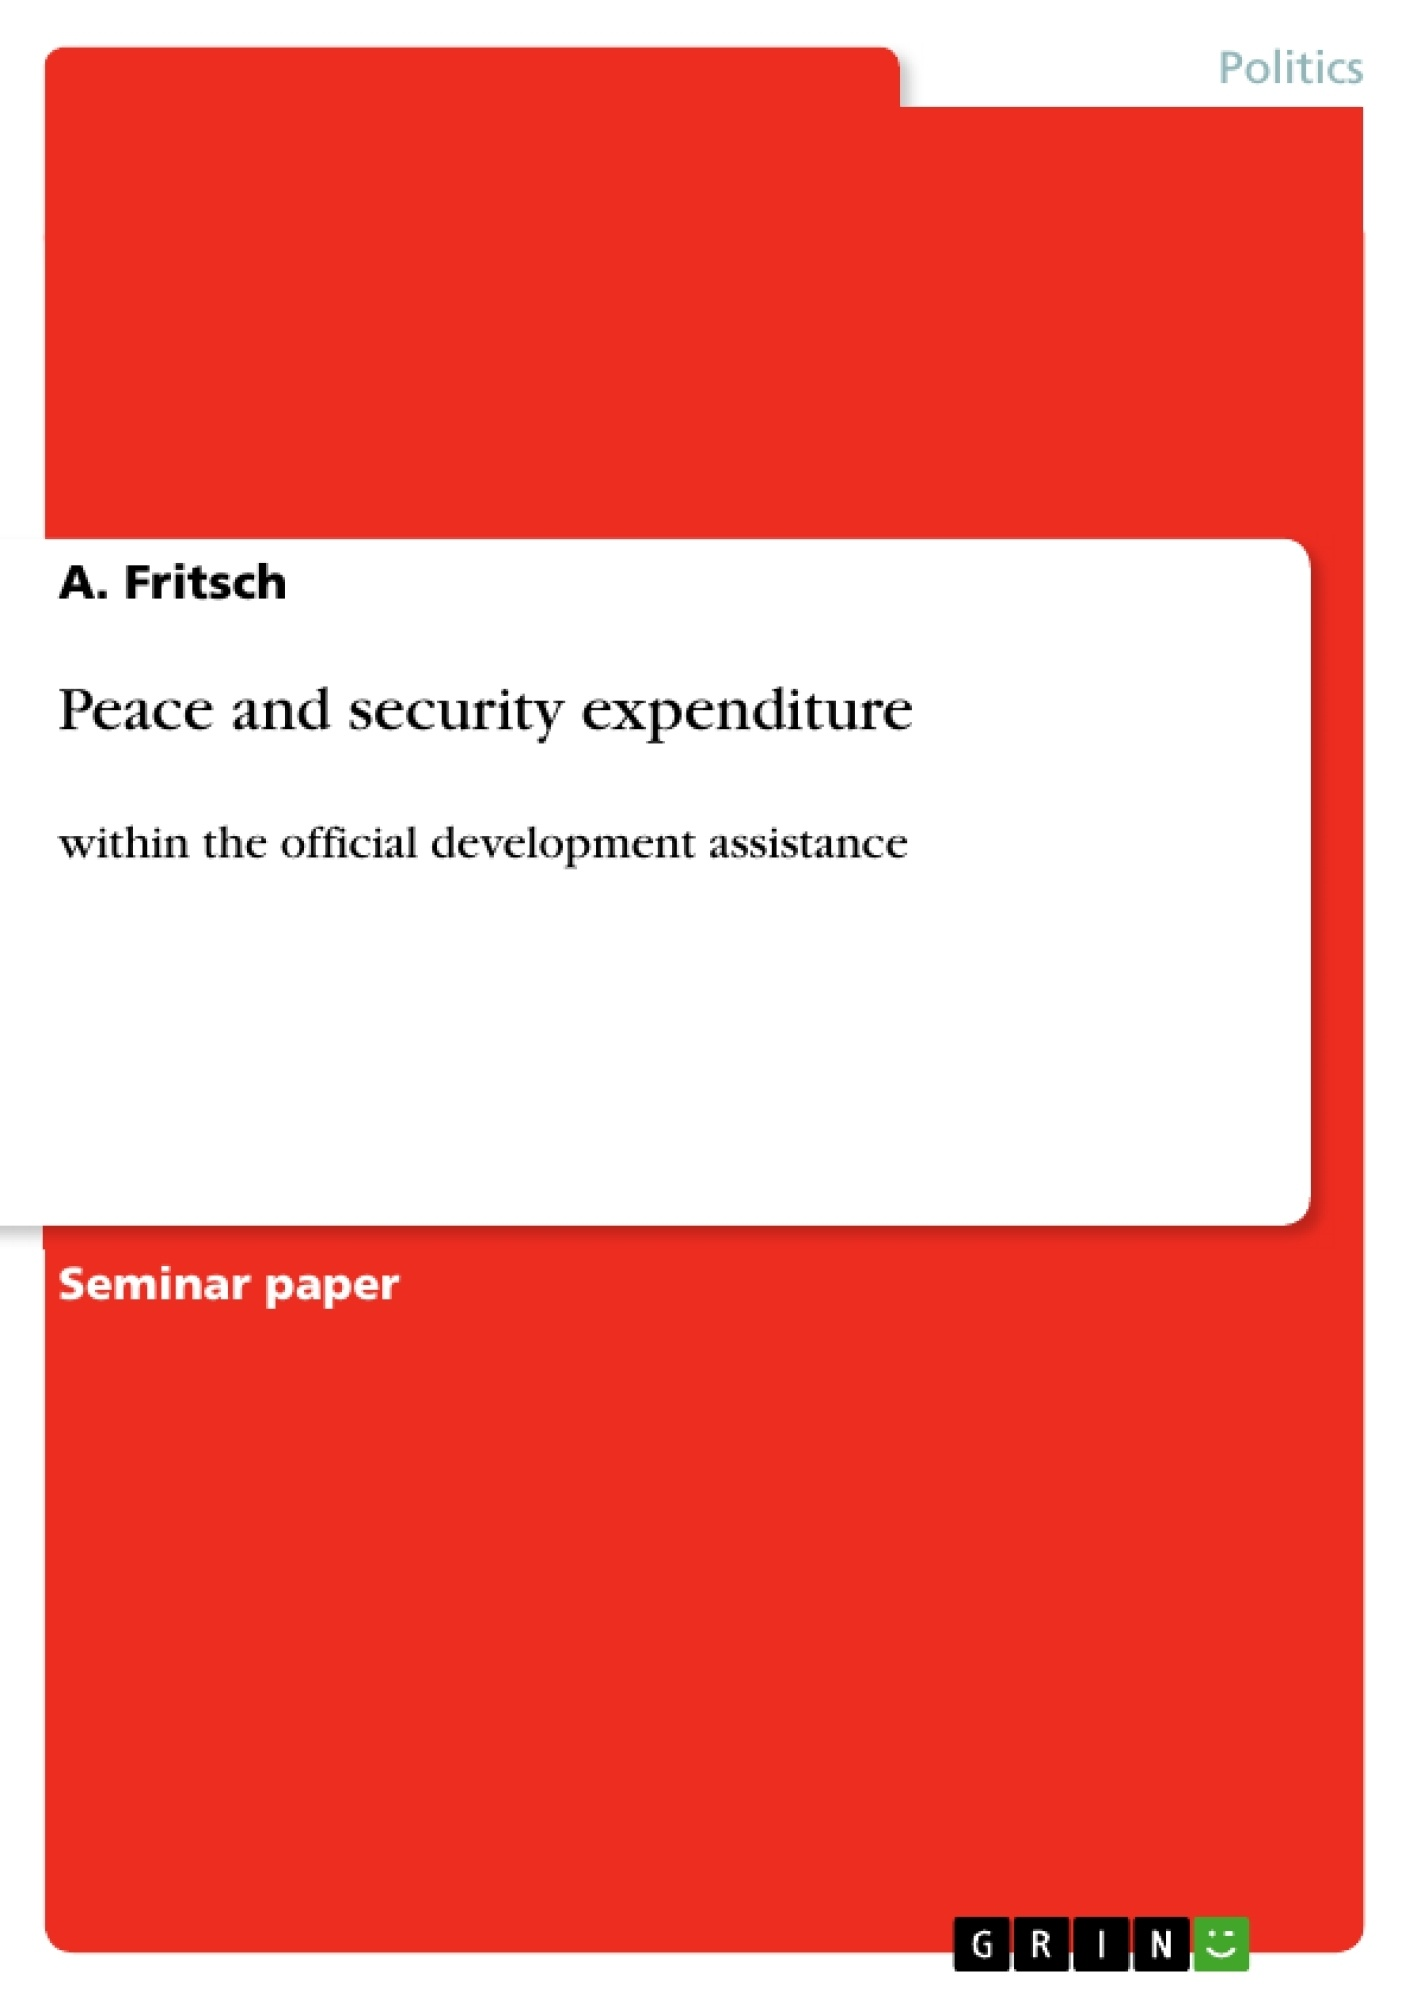 Title: Peace and security expenditure